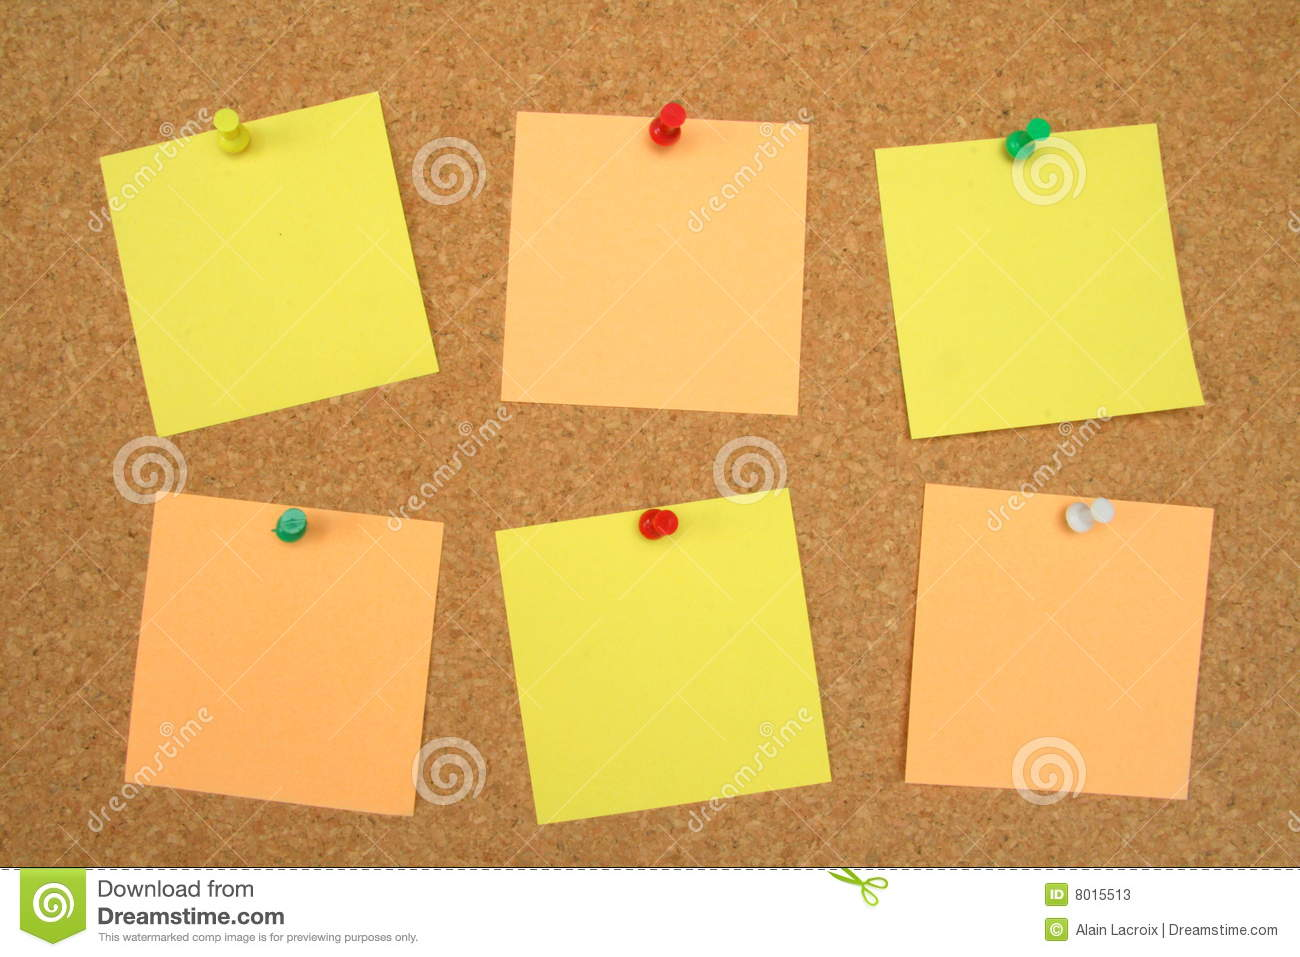 corkboard map with Stock Photos Pinboard Notes Image8015513 on 15 Fun Features For Family Rooms further 32643829251 besides Stock Photos Pinboard Notes Image8015513 furthermore Royalty Free Stock Photo Tower Money Packs Image23120215 besides Thumbtack.